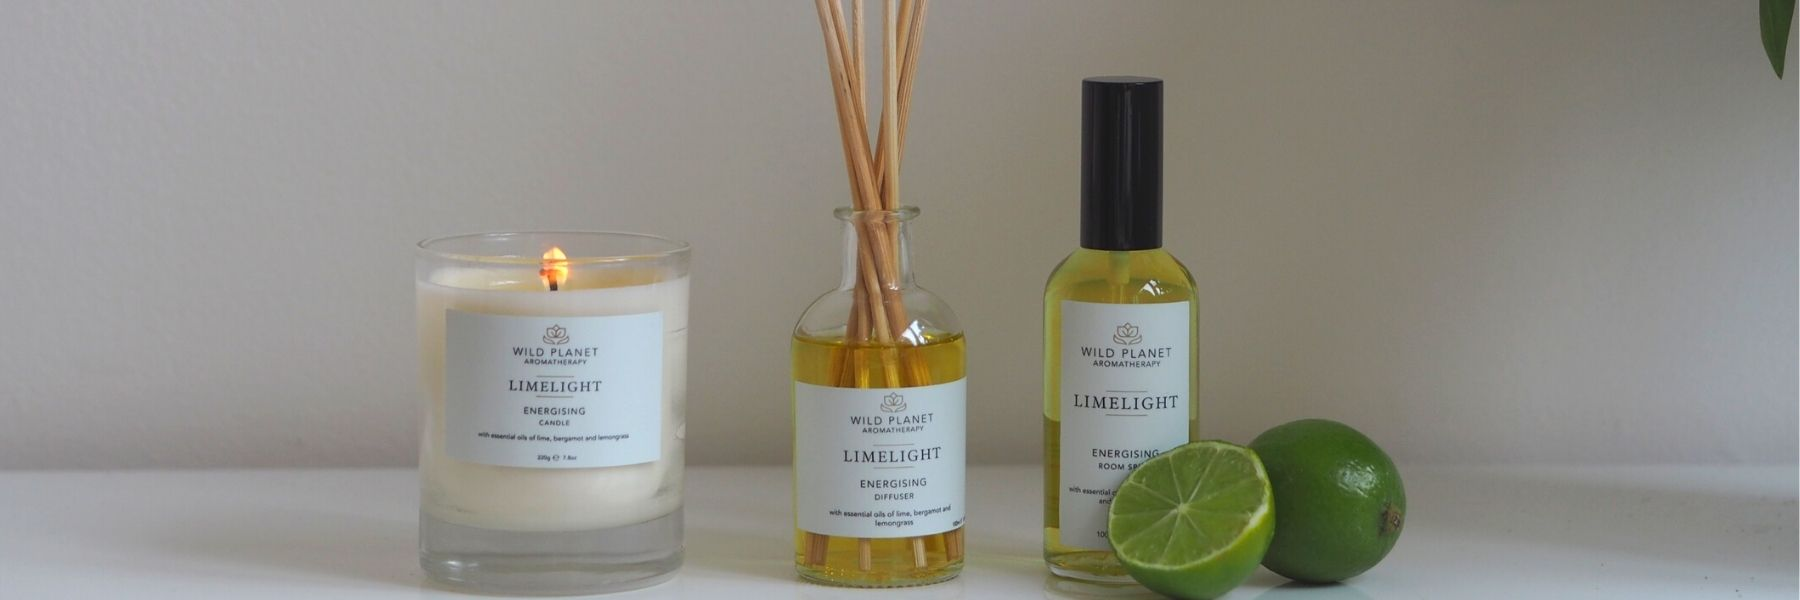 Limelight home fragrance candle, reed diffuser and room spray next to fresh lime sliced in half Wild Planet Aromatherapy blog